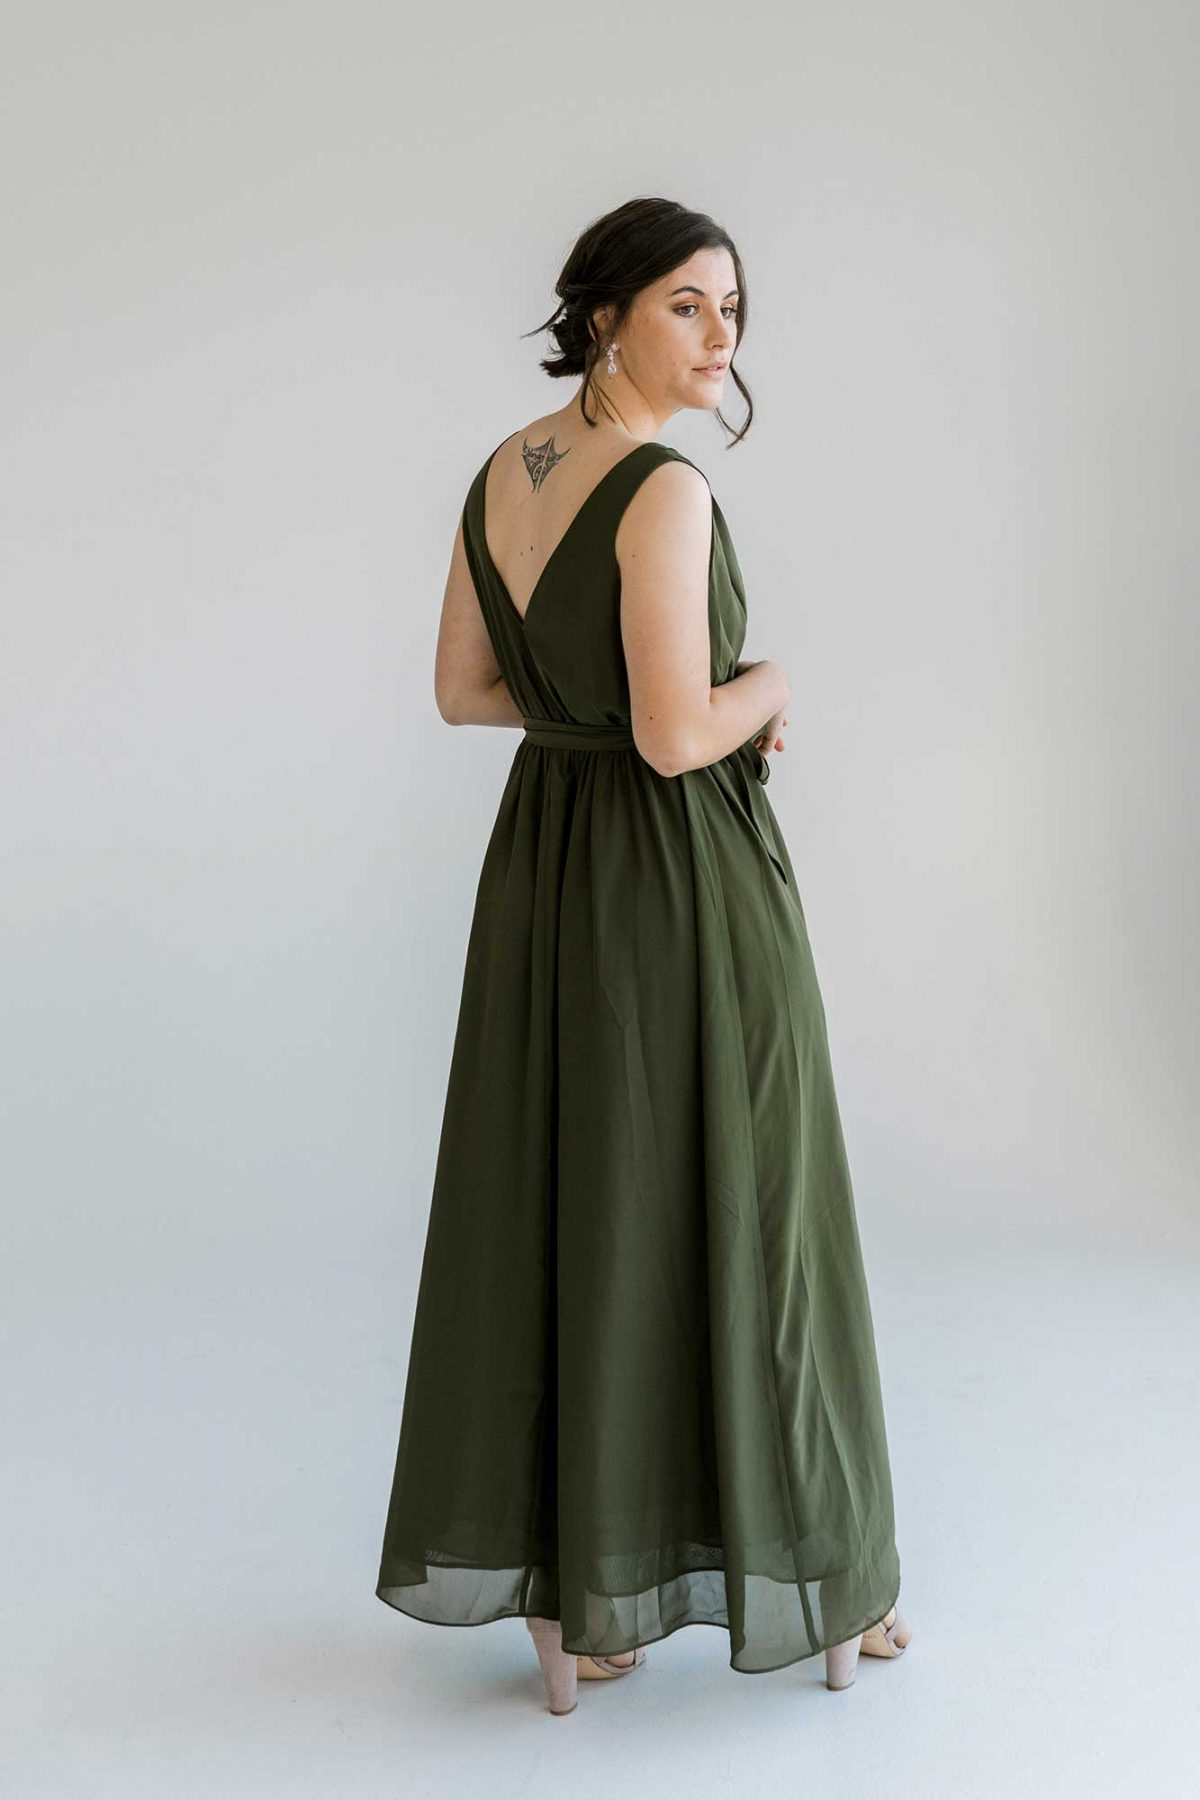 Sasha dress in olive colour side view